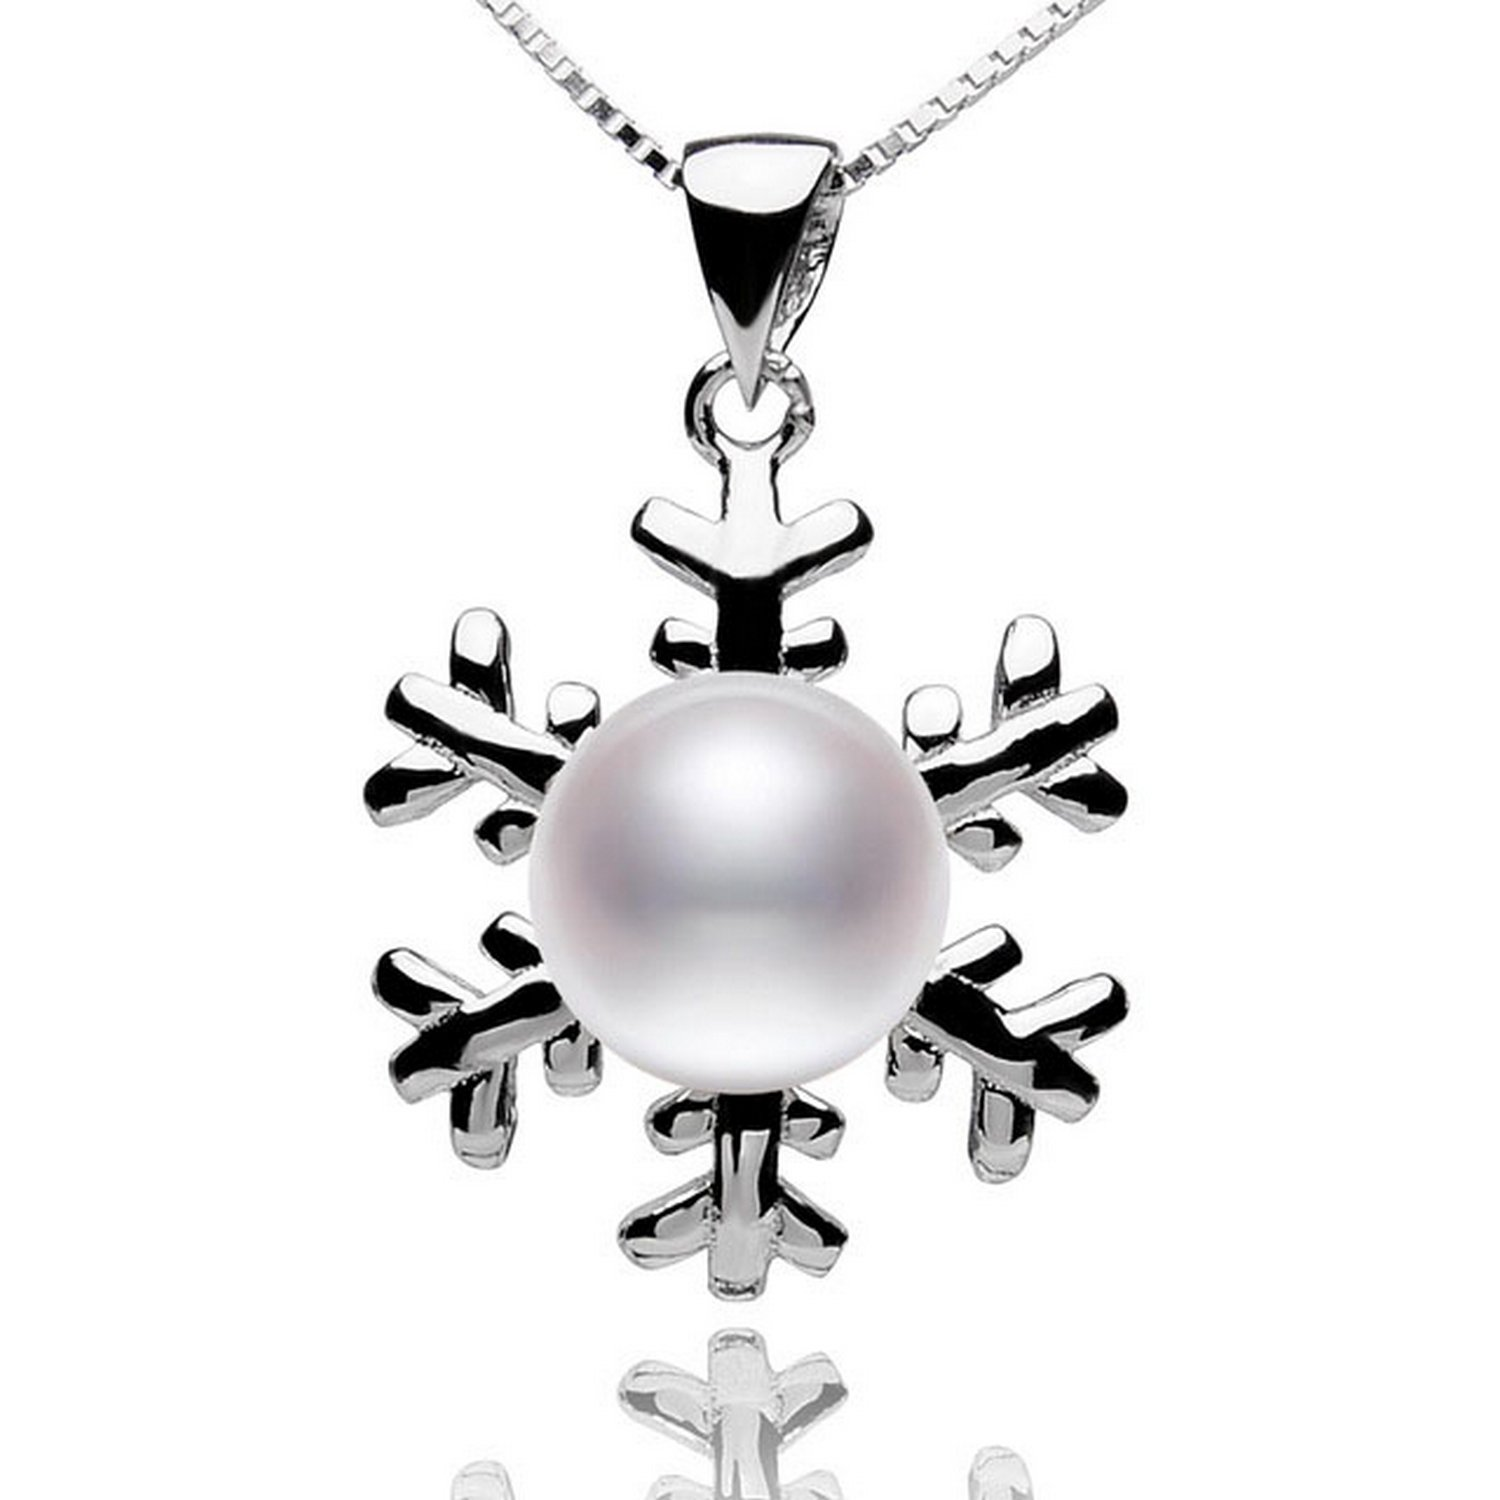 MMC Cultured Pearl Jewelry Silver Pendants Necklaces